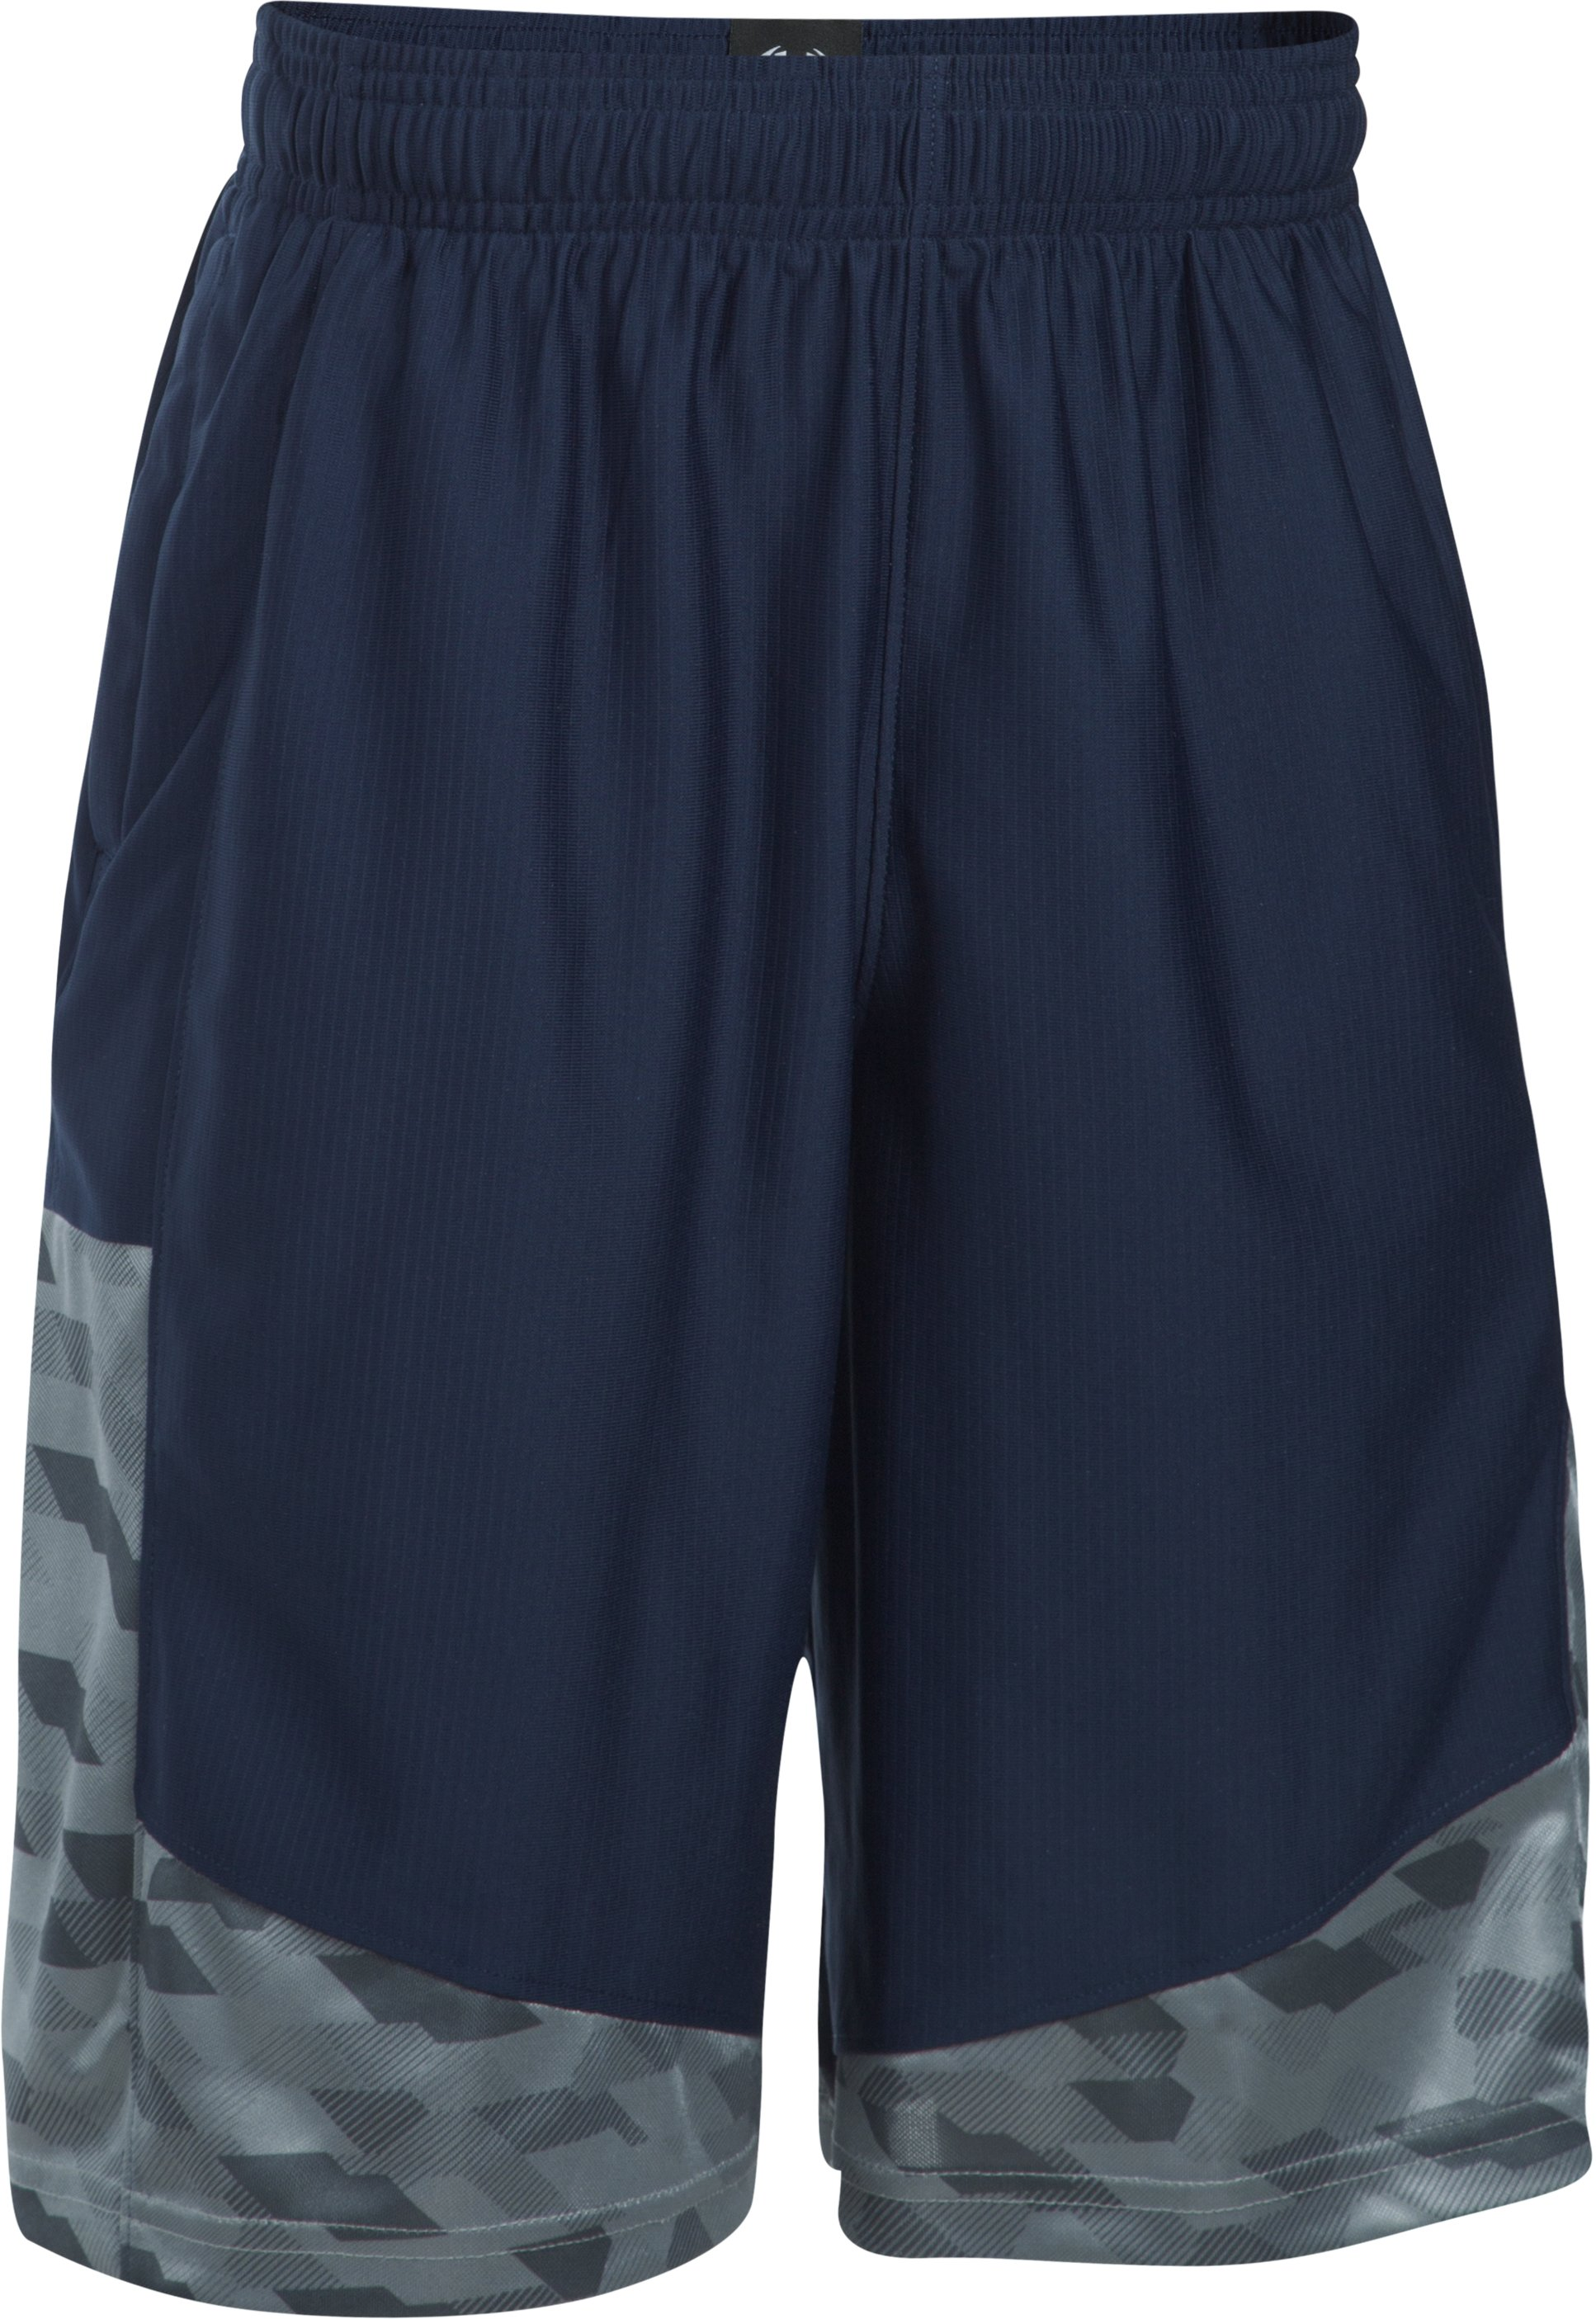 Boys' SC30 Performance Shorts, Midnight Navy